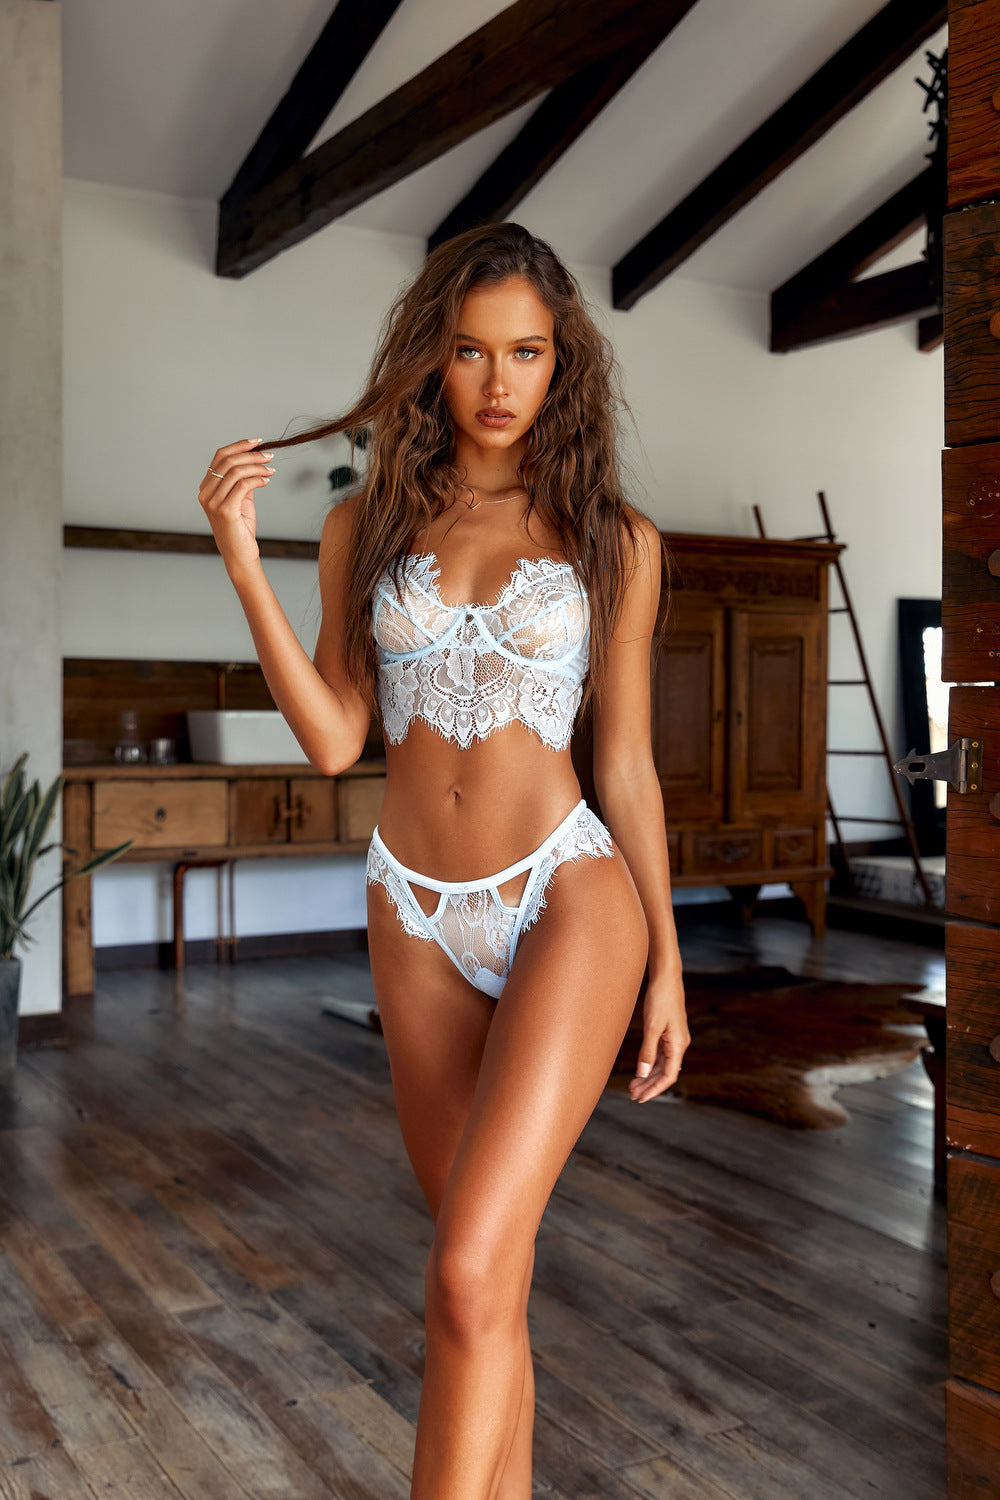 Isabelle Mathers wearing the Balcony Be Mine Lingerie Set in Baby Blue